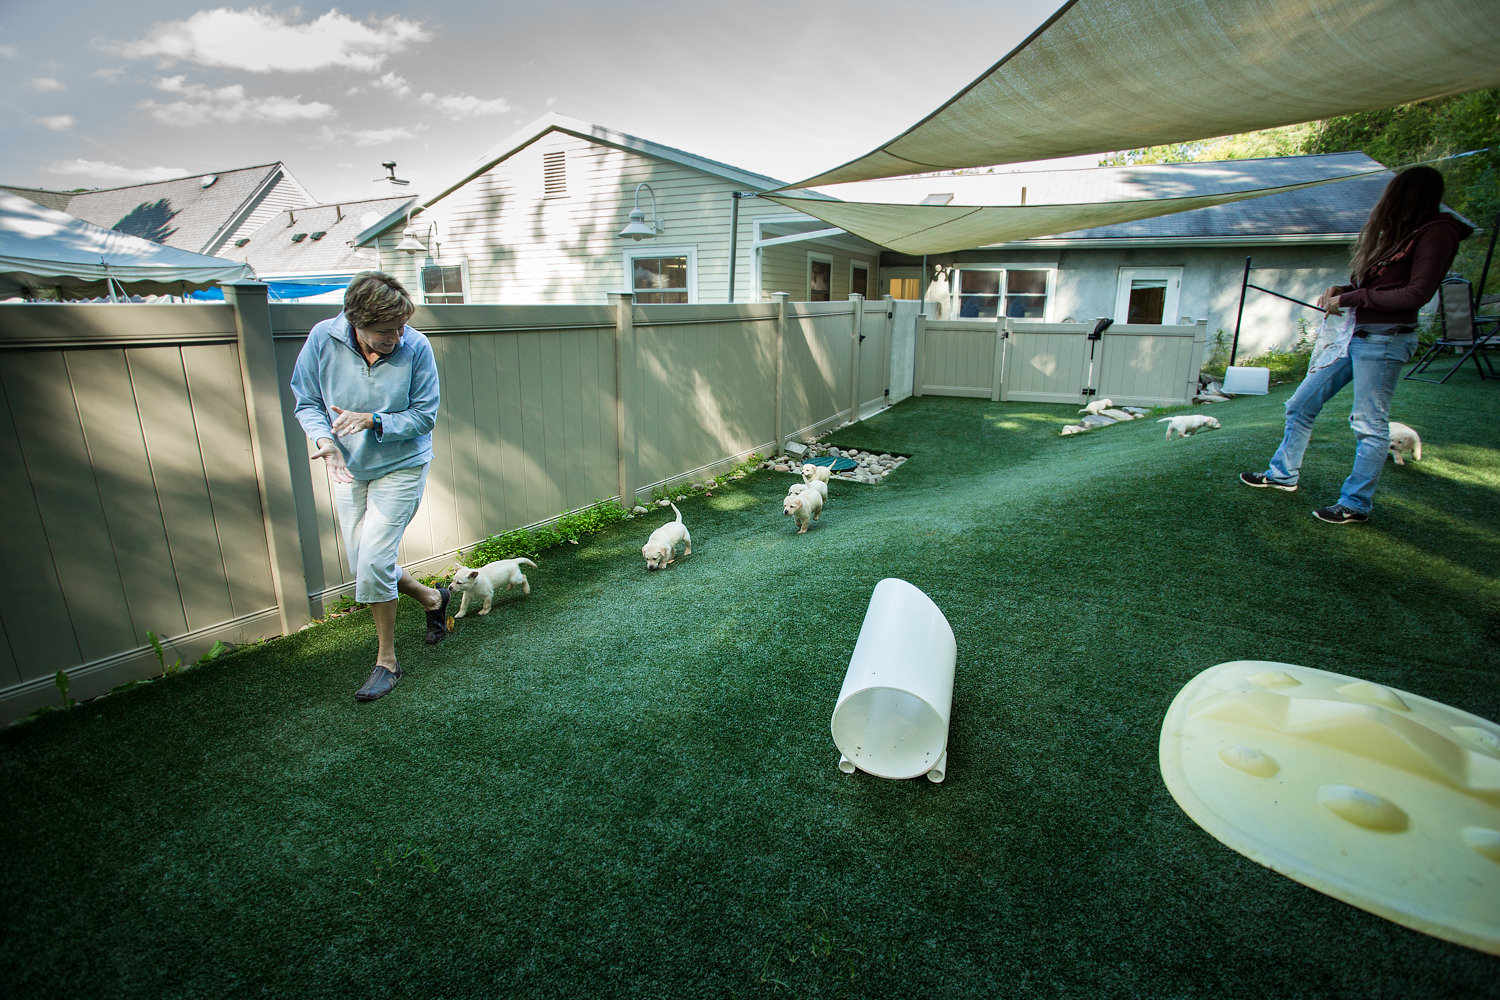 Guiding Eyes volunteer leads litter in outdoor turf area.